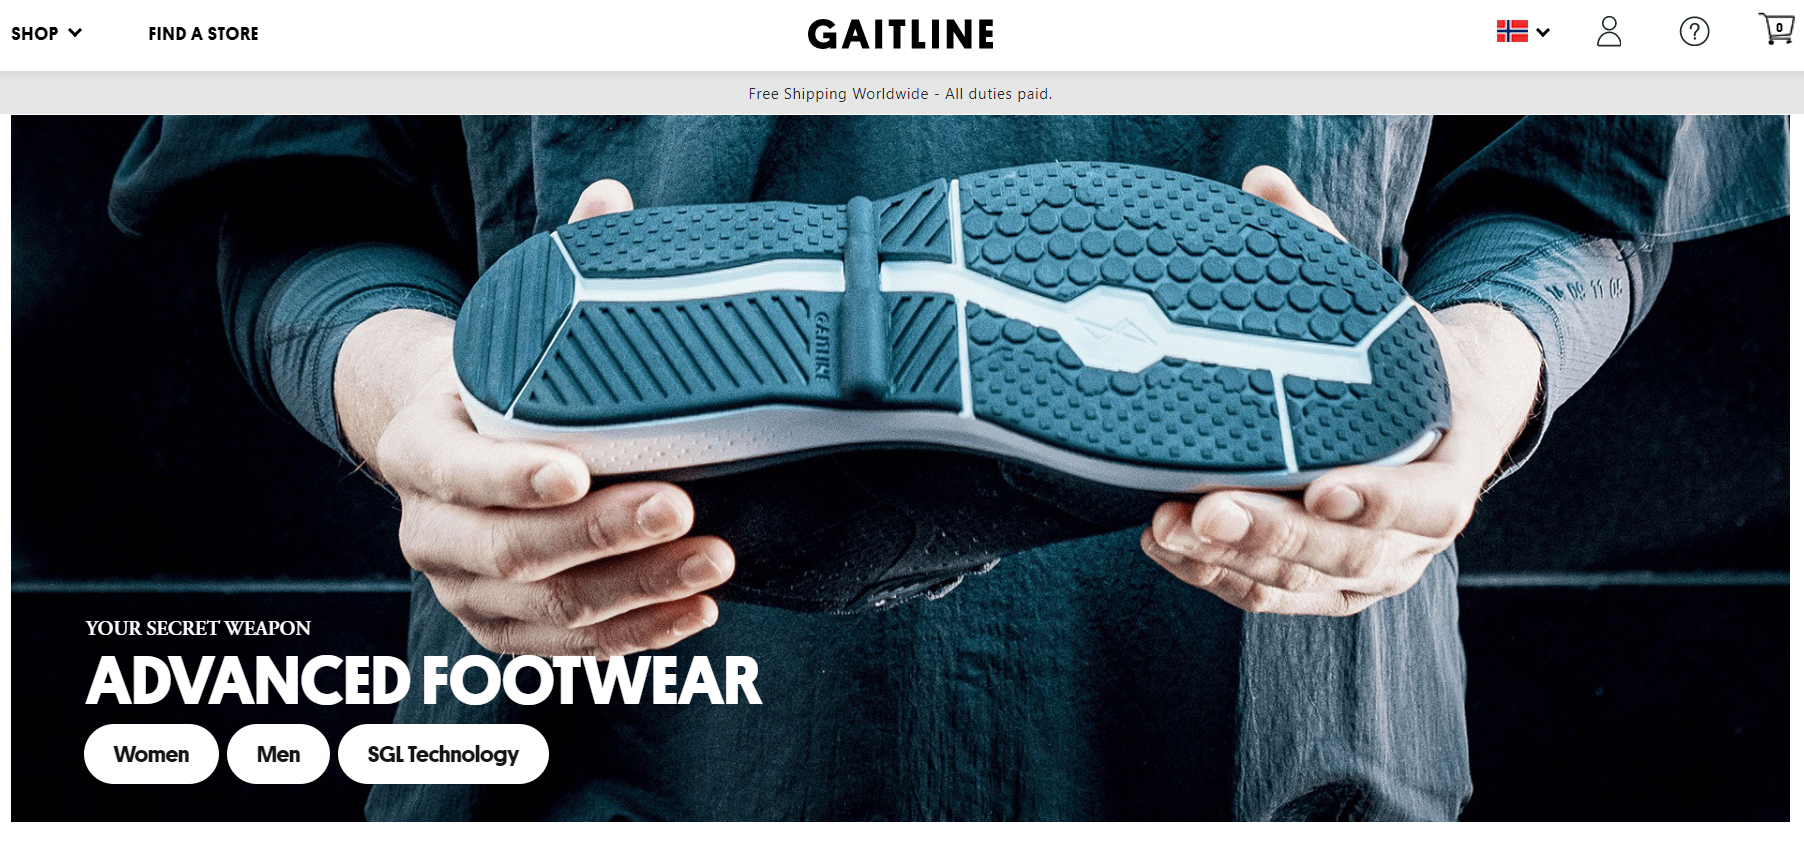 Gaitline responsive theme development